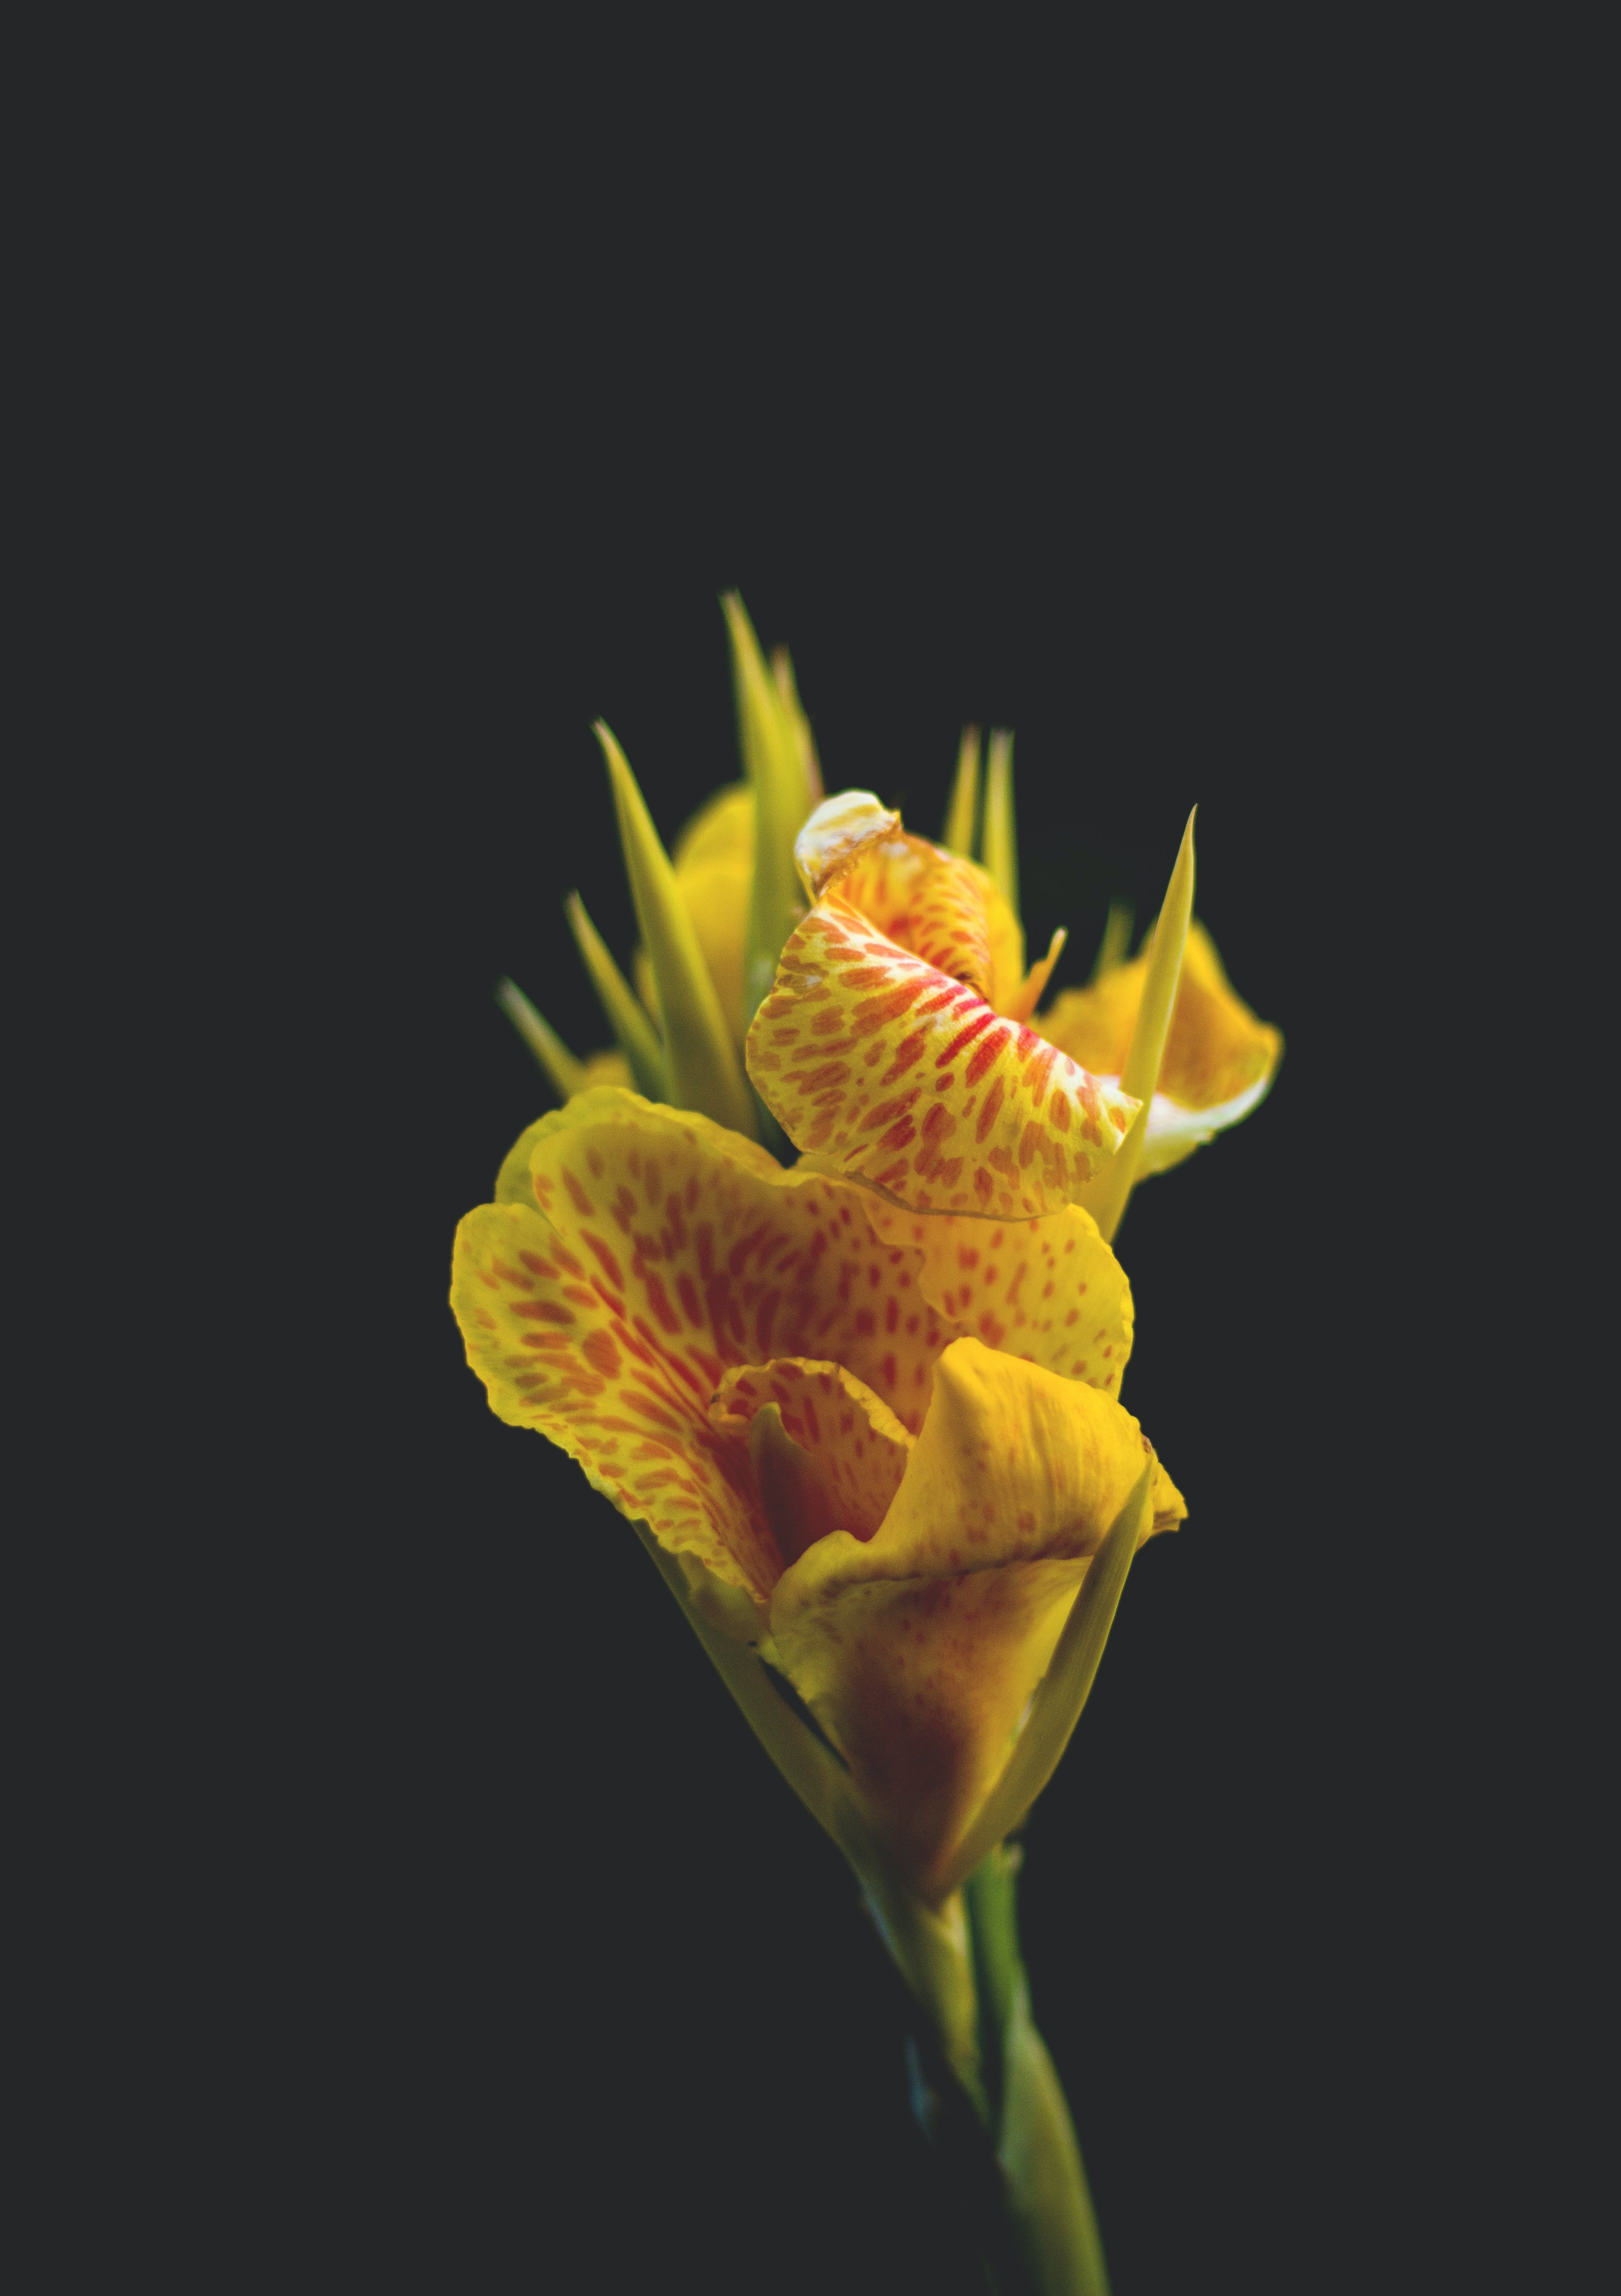 Close-Up Photography of A Yellow Flower